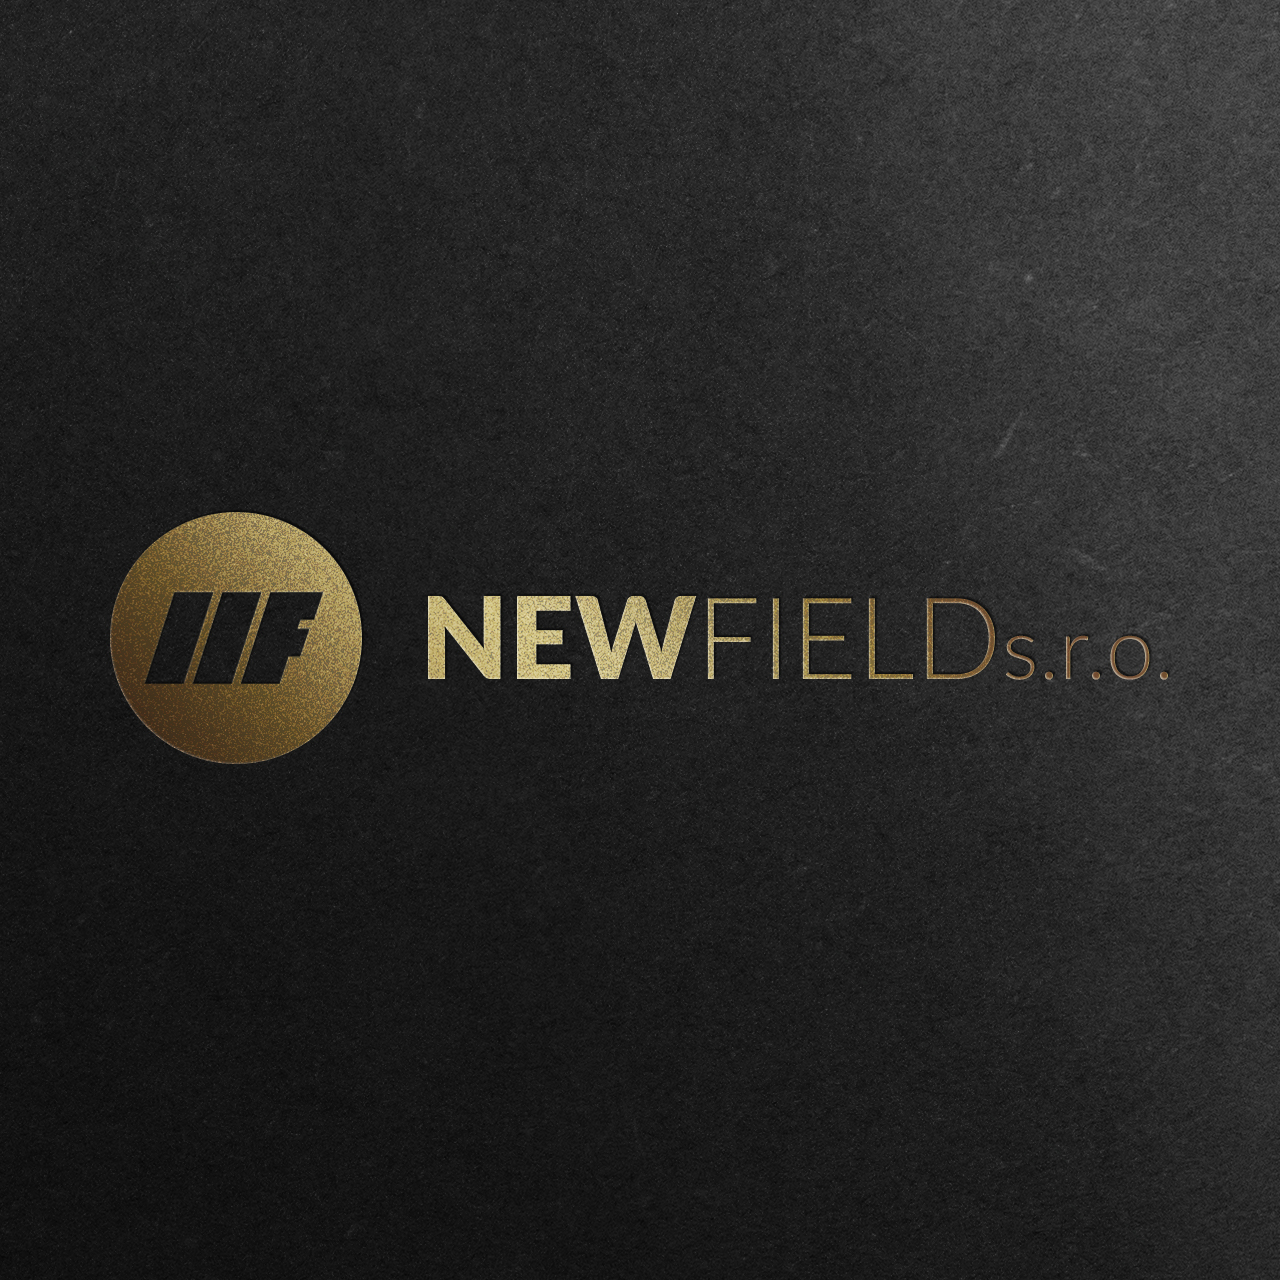 new field-logo-mockup-gold